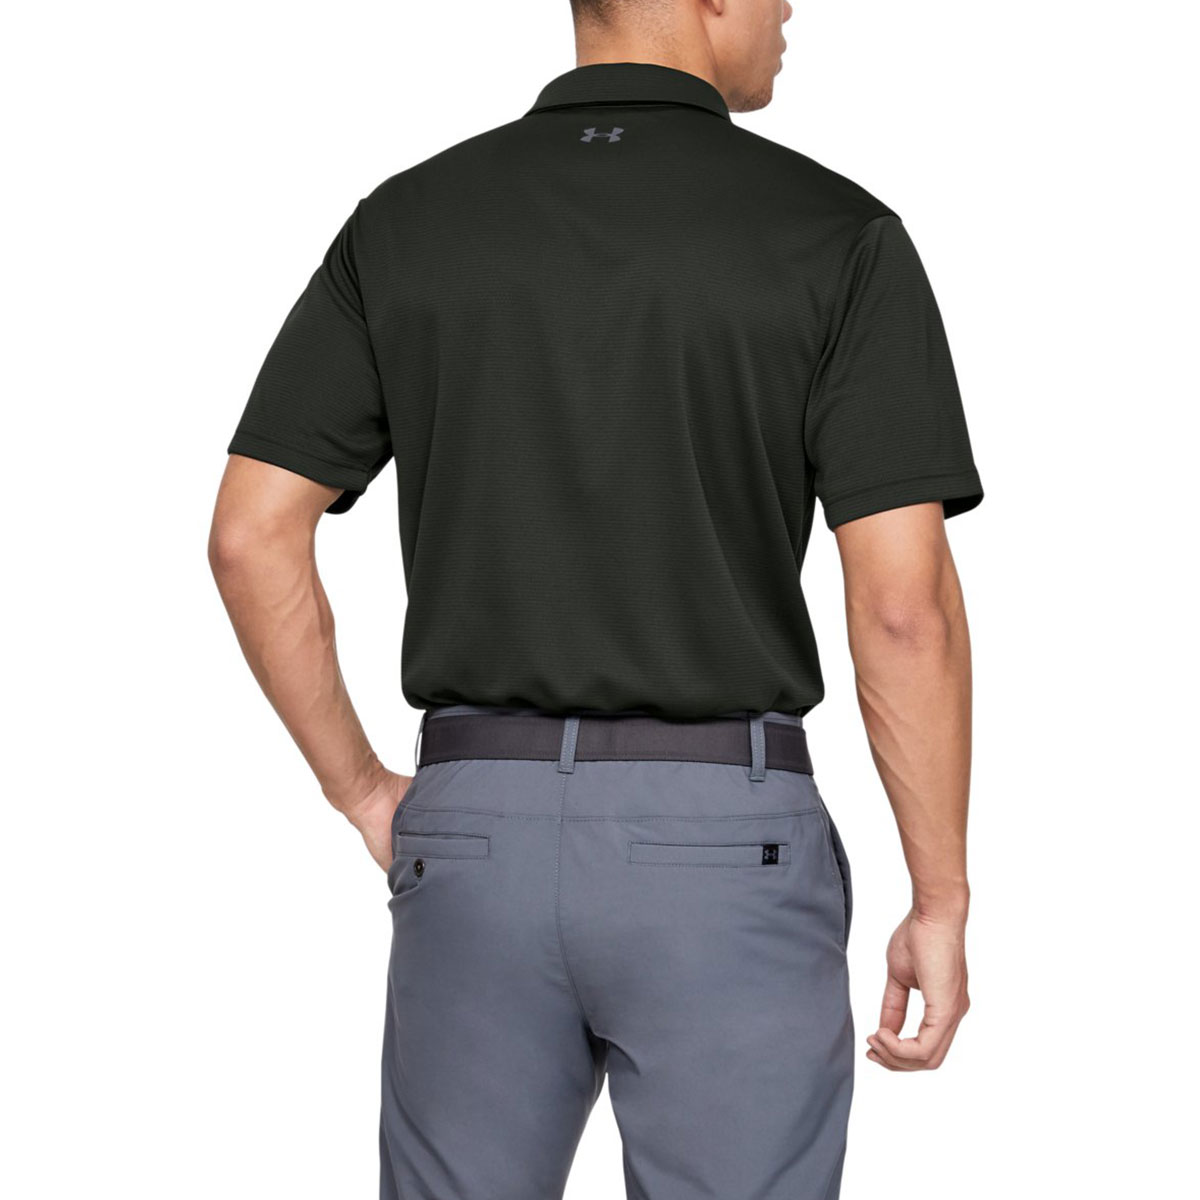 Under-Armour-Mens-2019-Golf-Tech-Wicking-Textured-Soft-Light-Polo-Shirt thumbnail 9